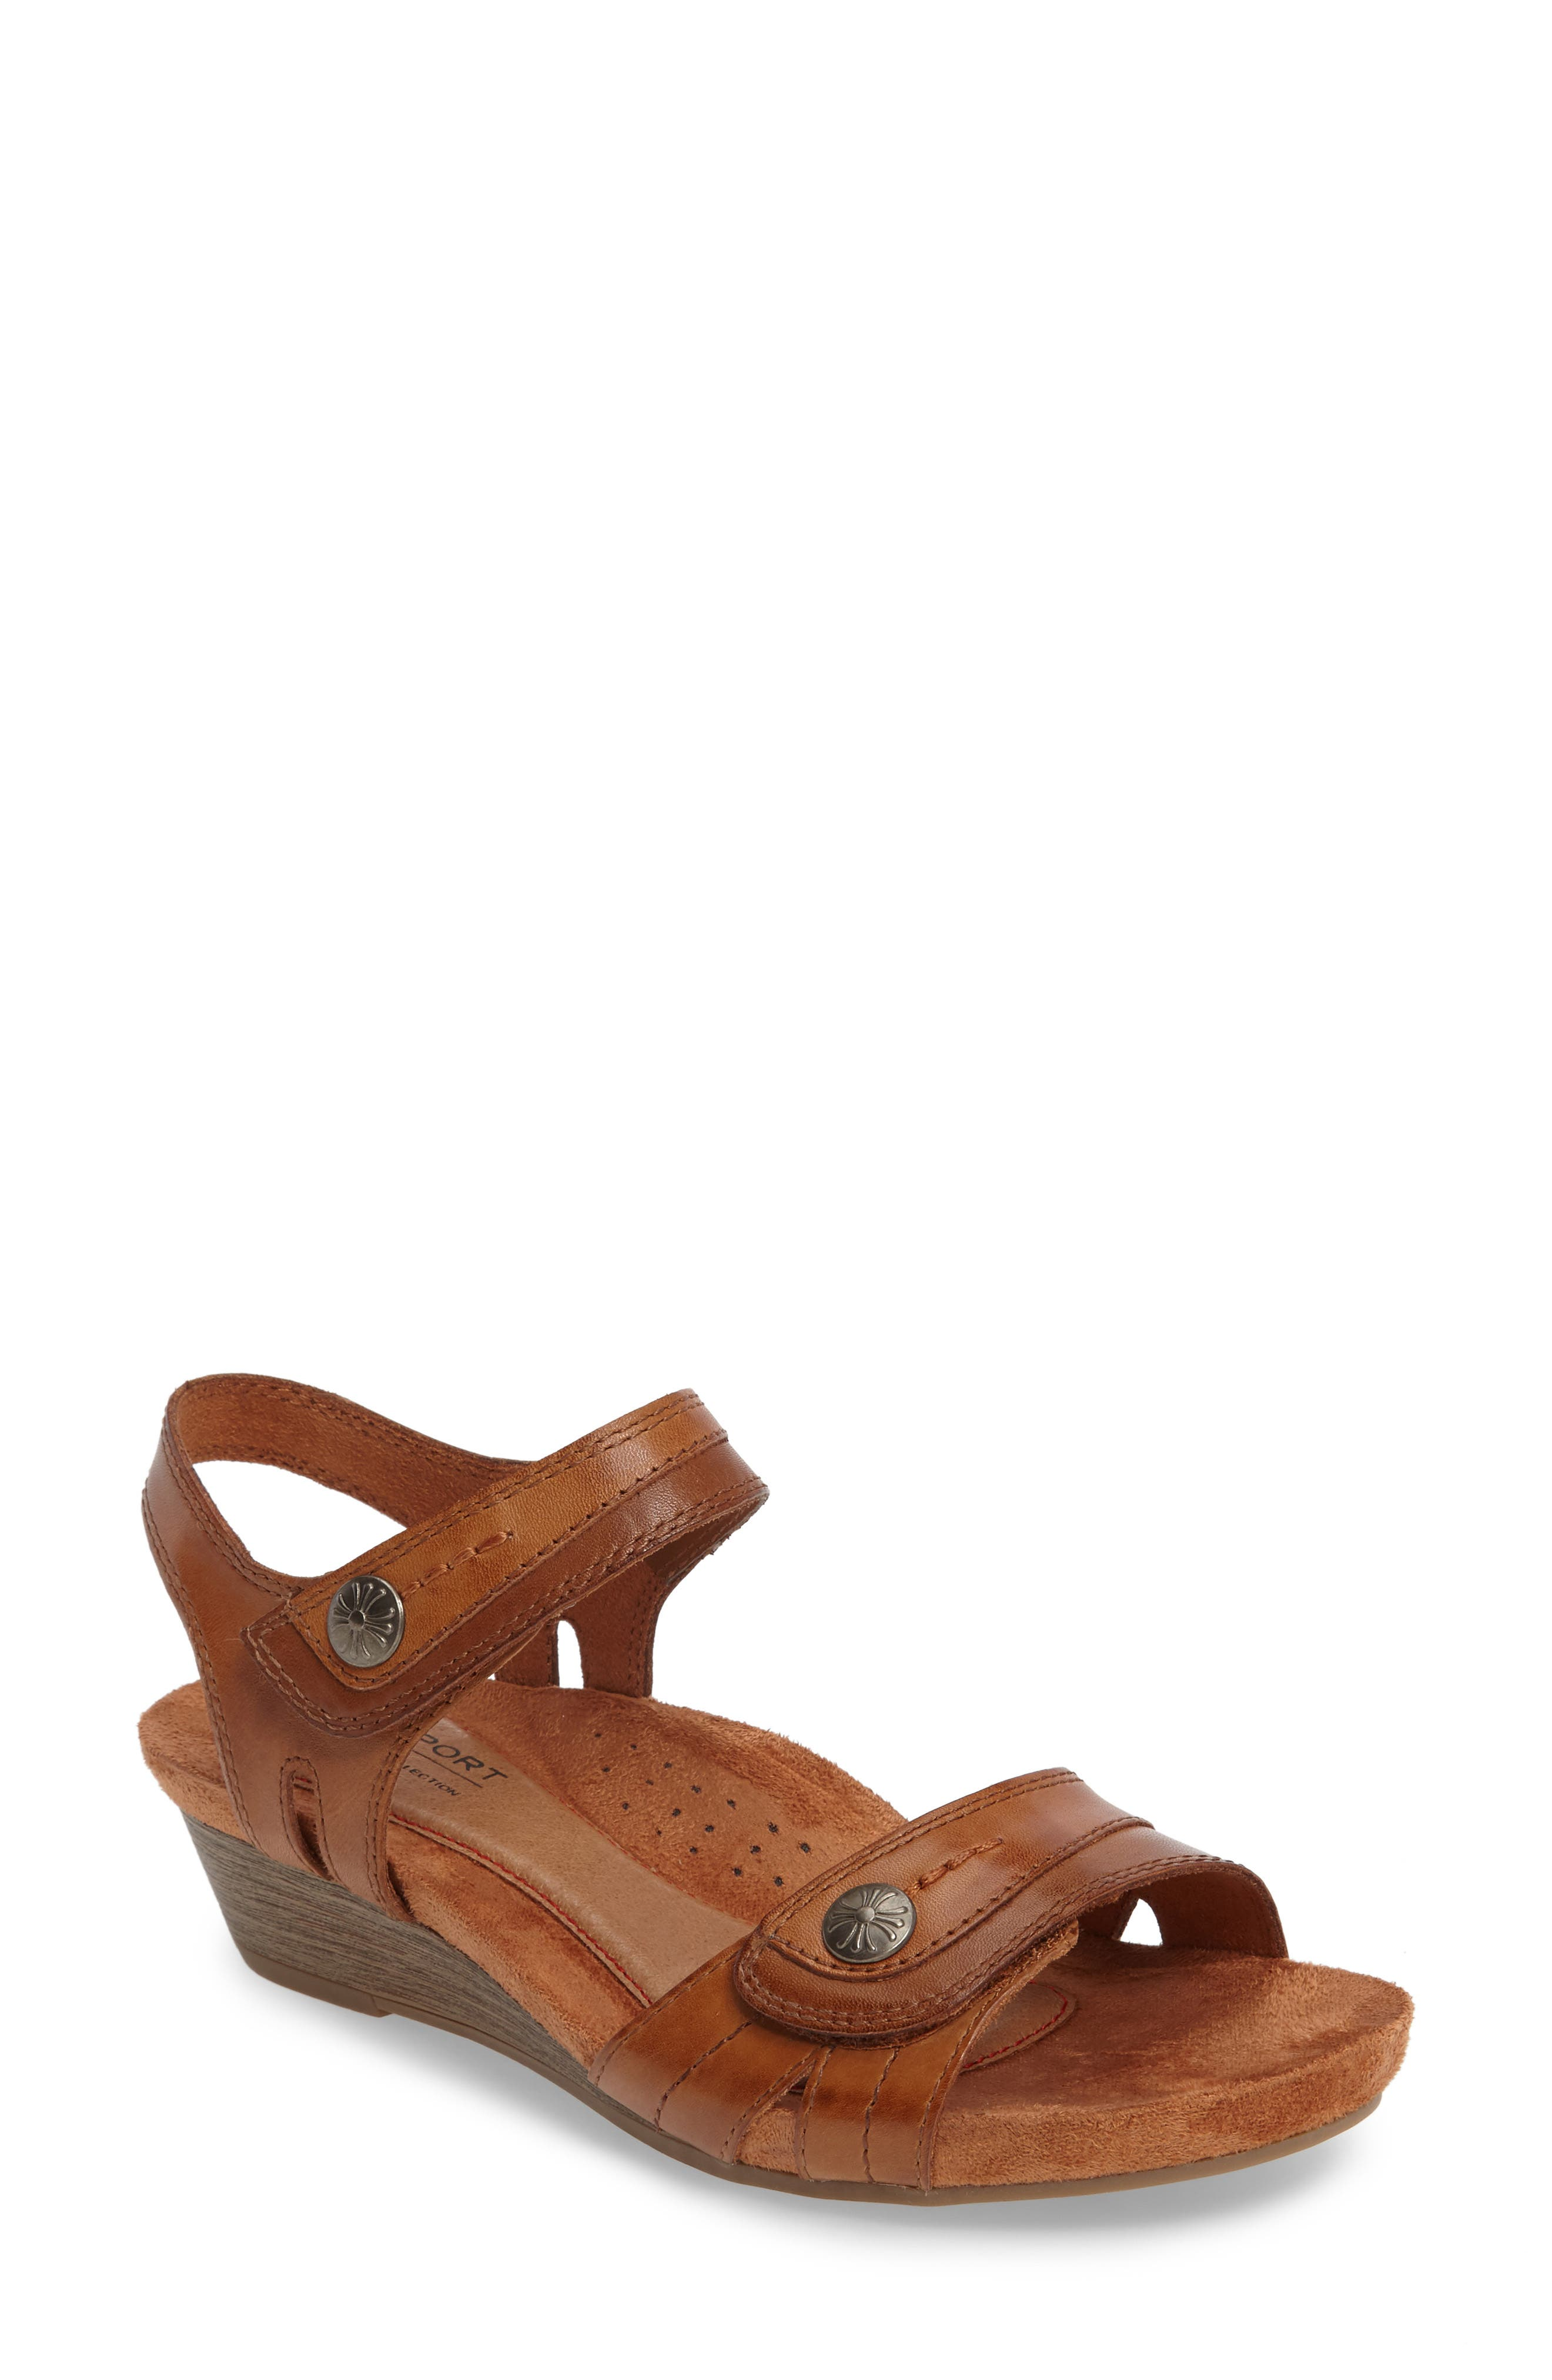 Alternate Image 1 Selected - Rockport Cobb Hill Hollywood Wedge Sandal (Women)